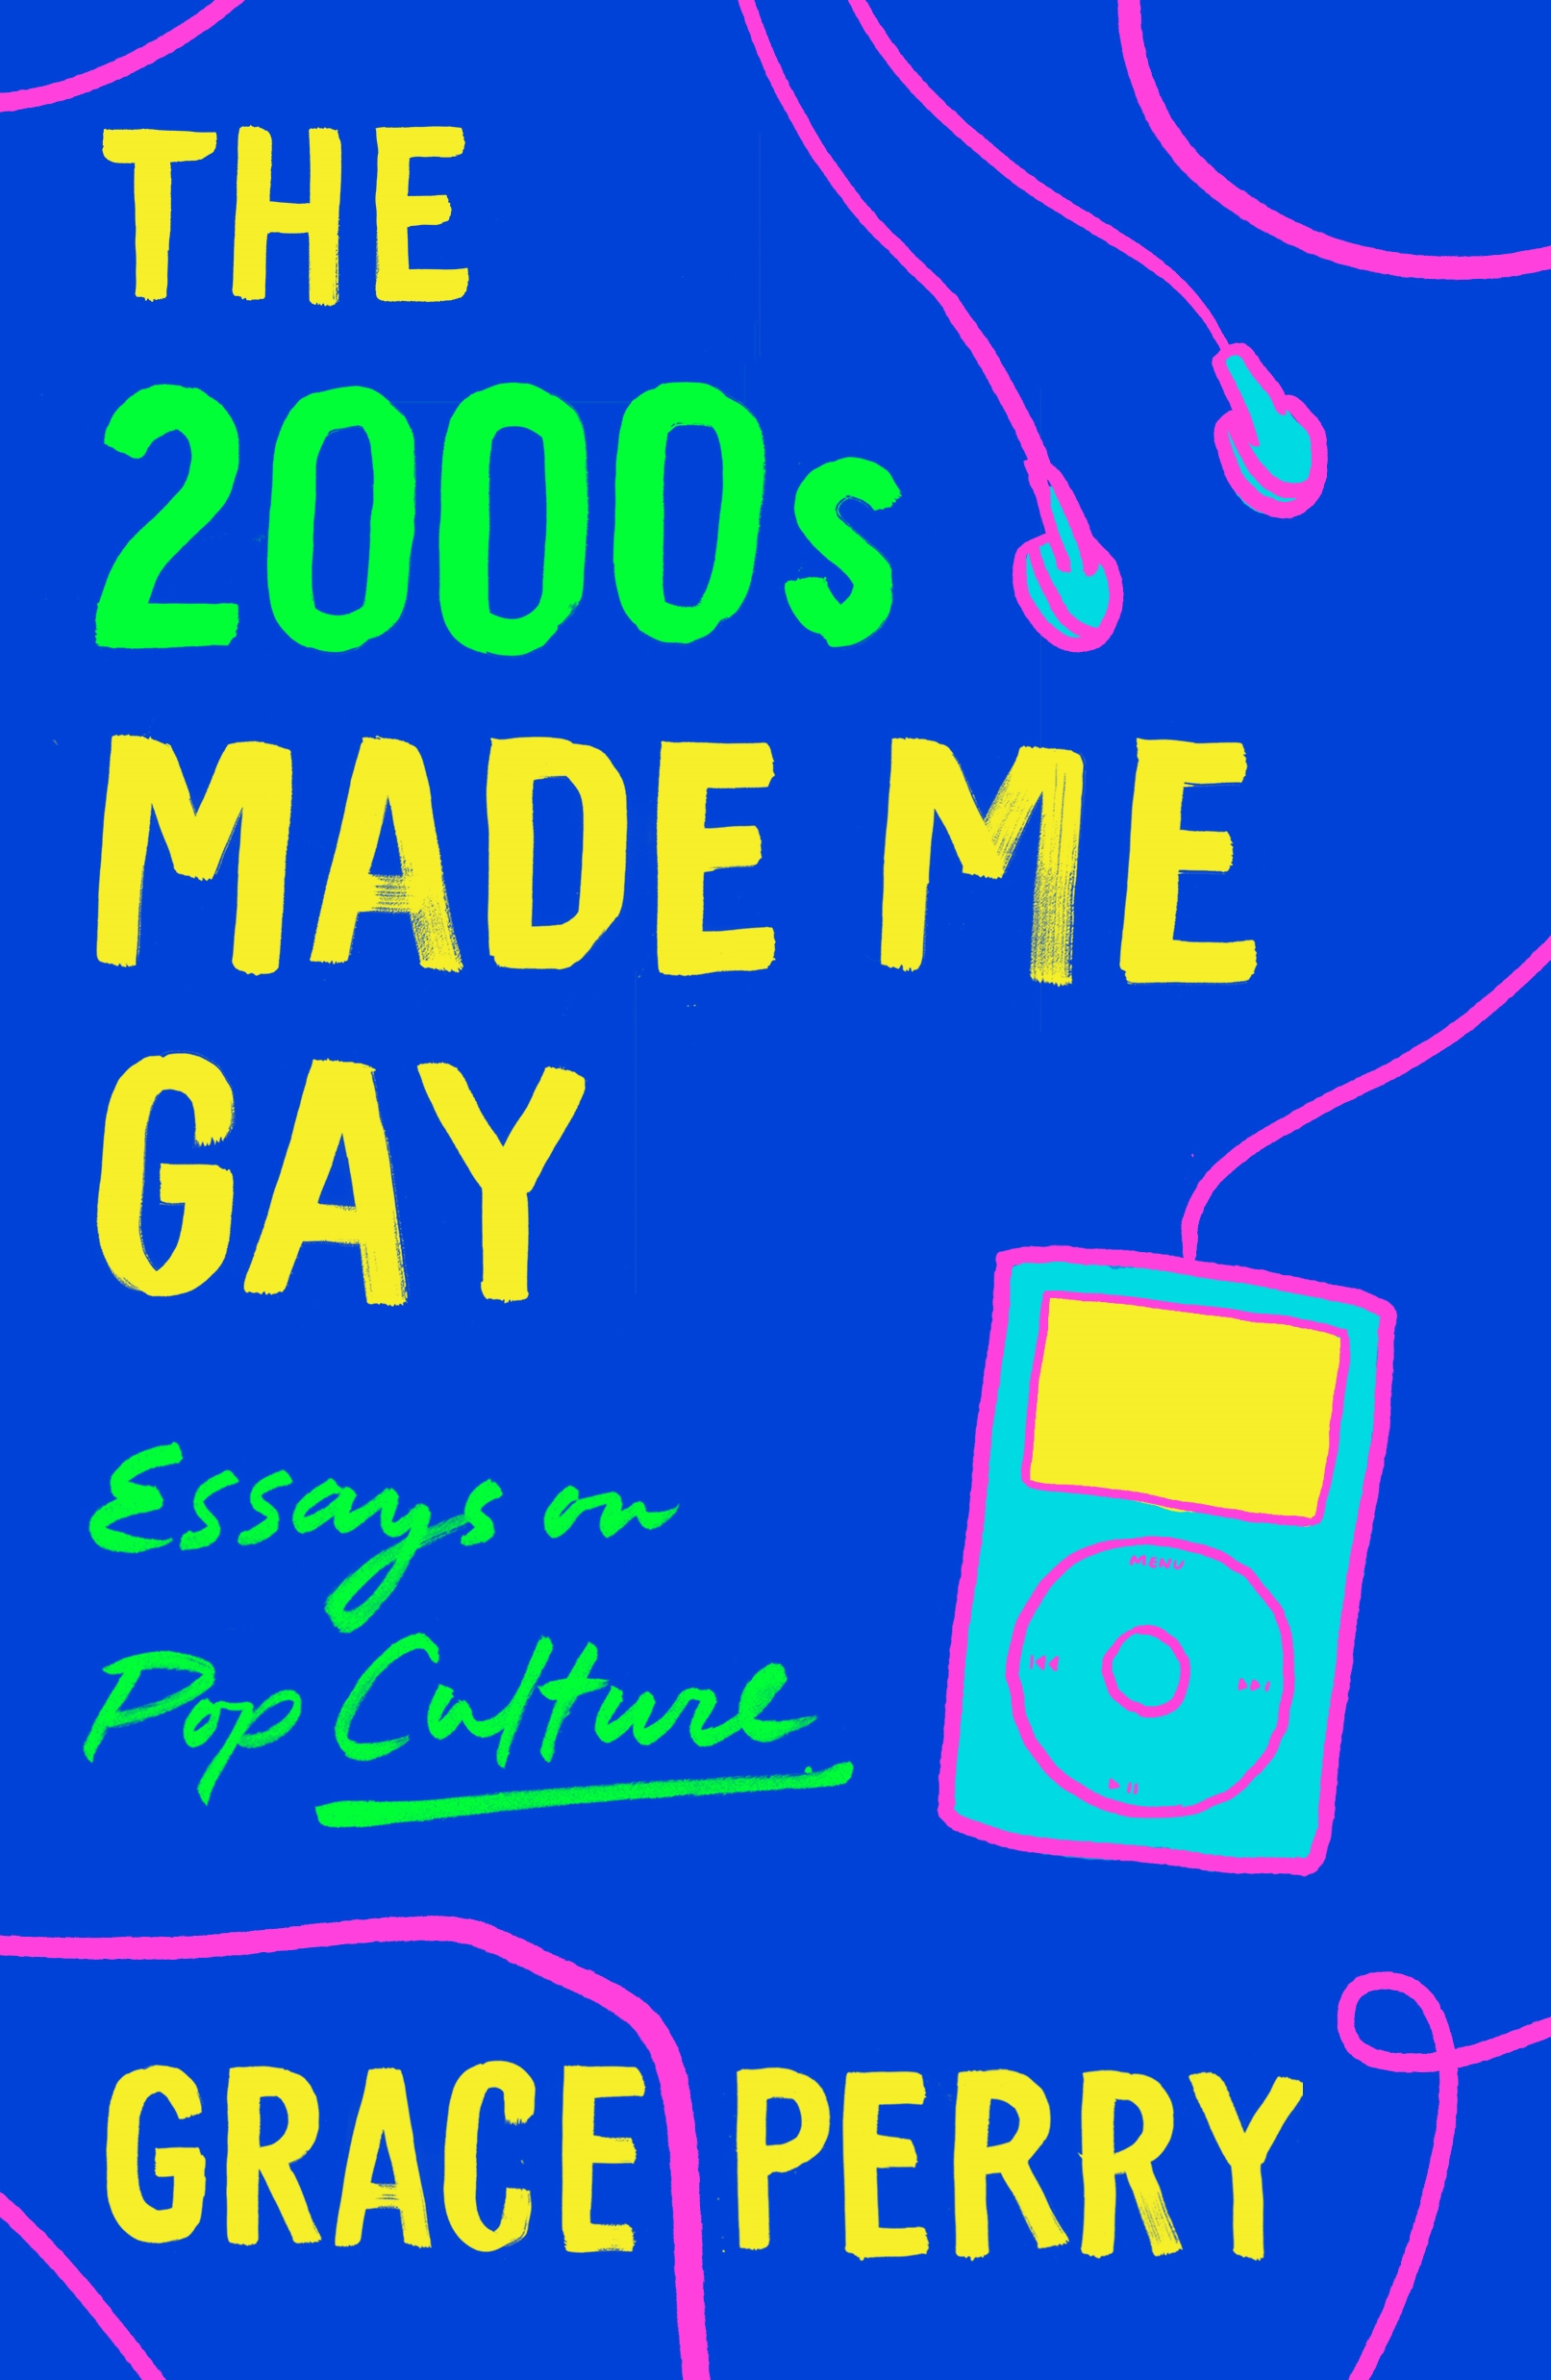 The 2000s Made Me Gay Essays on Pop Culture